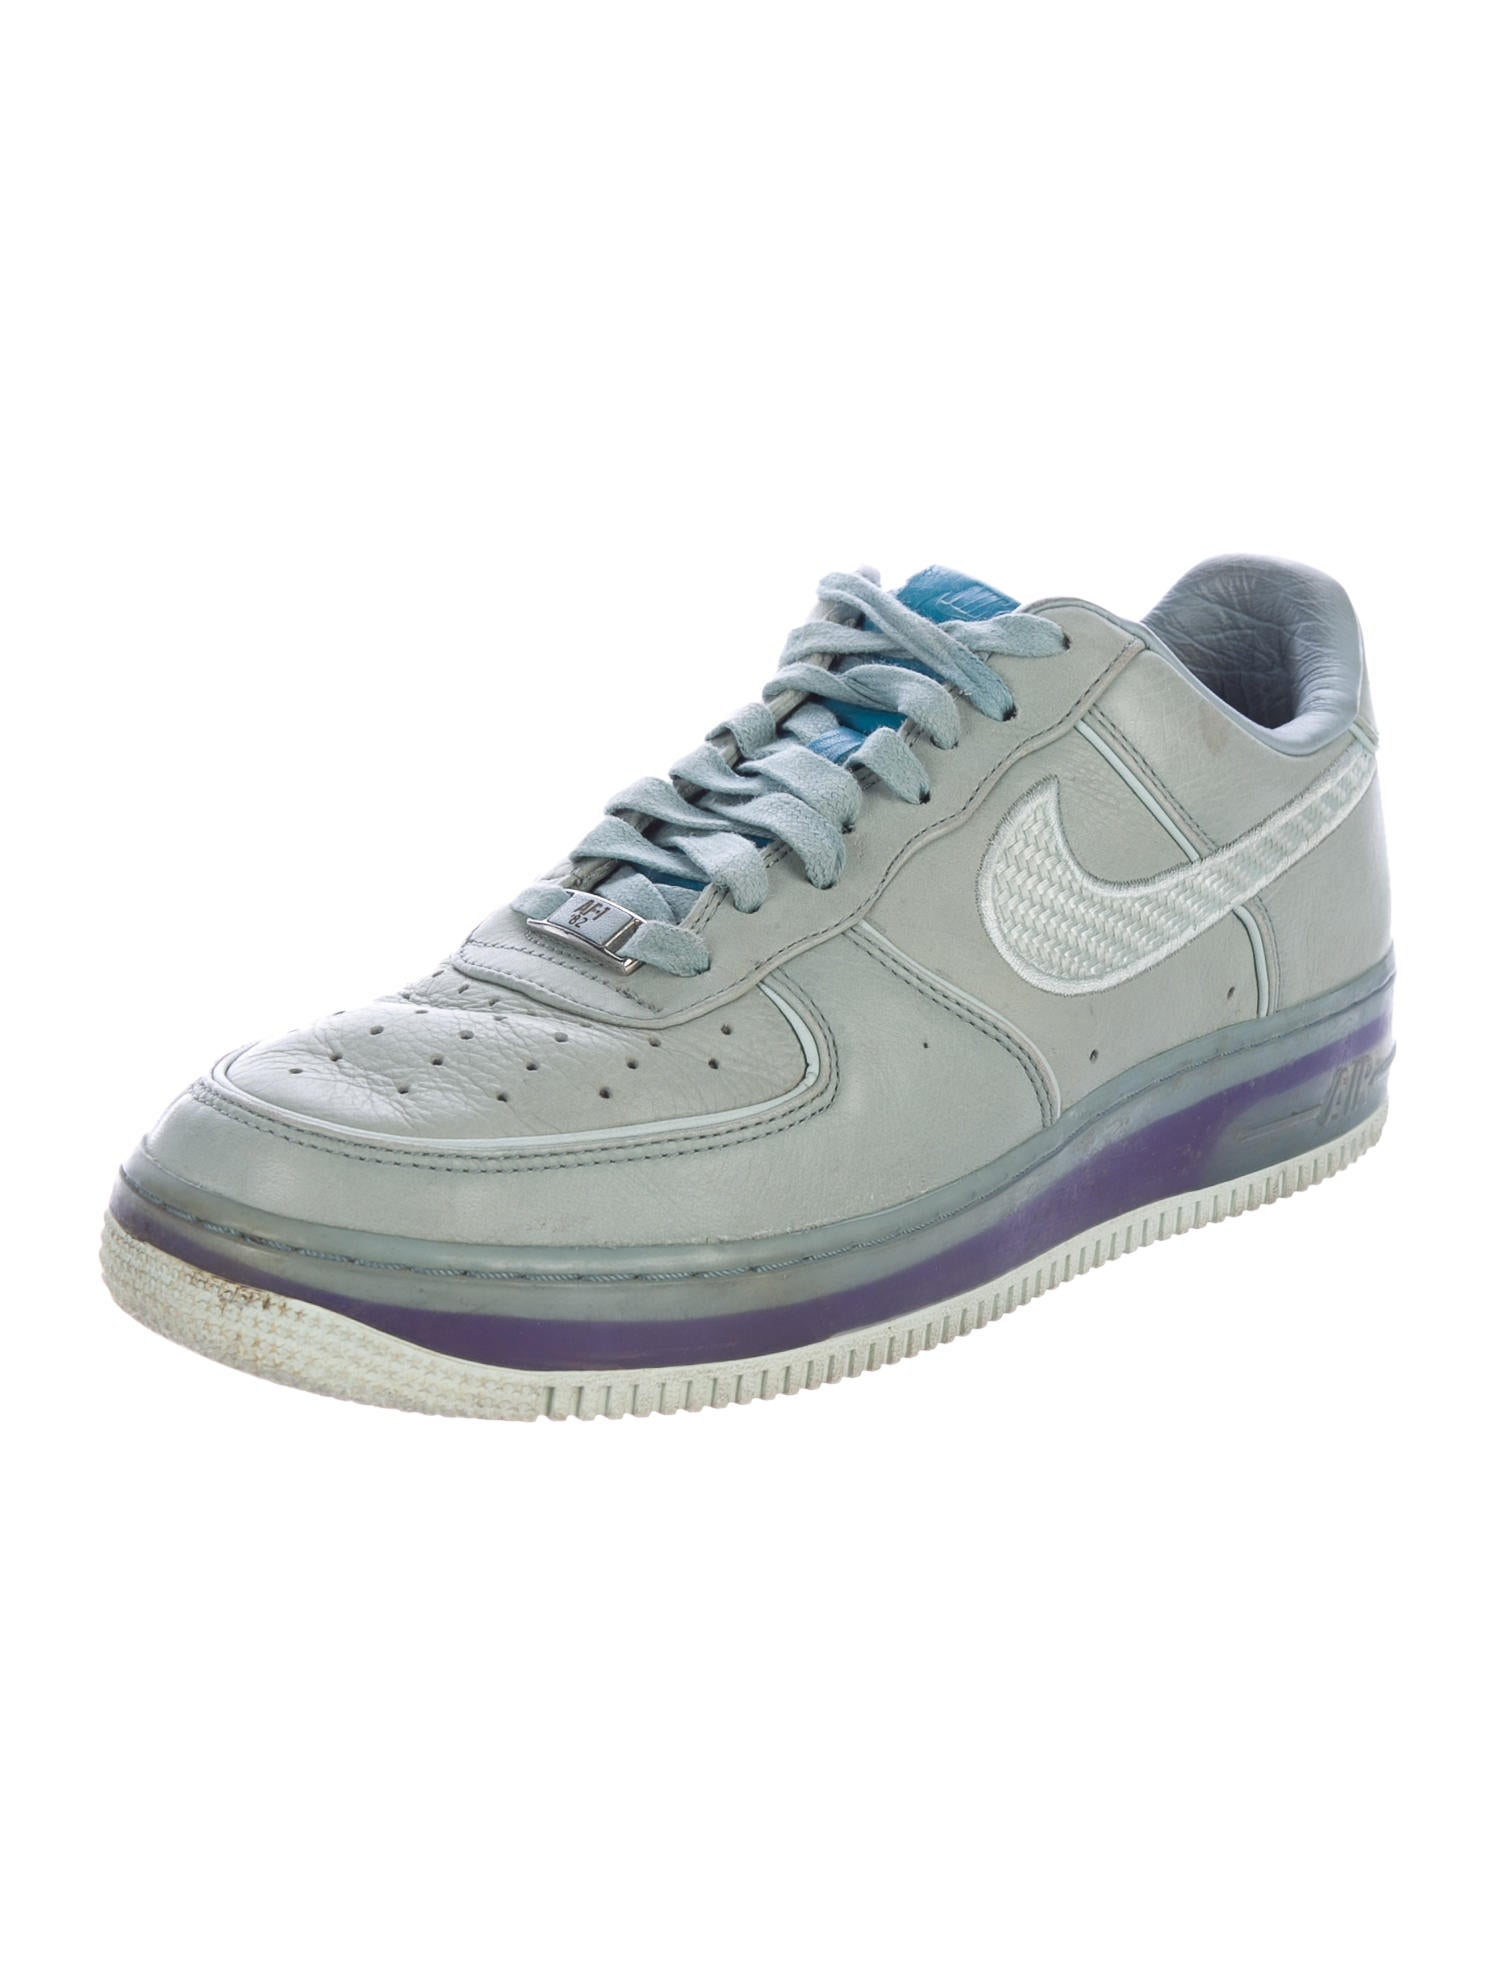 nike air force 1 sprm max air 07 japan sneakers shoes wu222038 the realreal. Black Bedroom Furniture Sets. Home Design Ideas